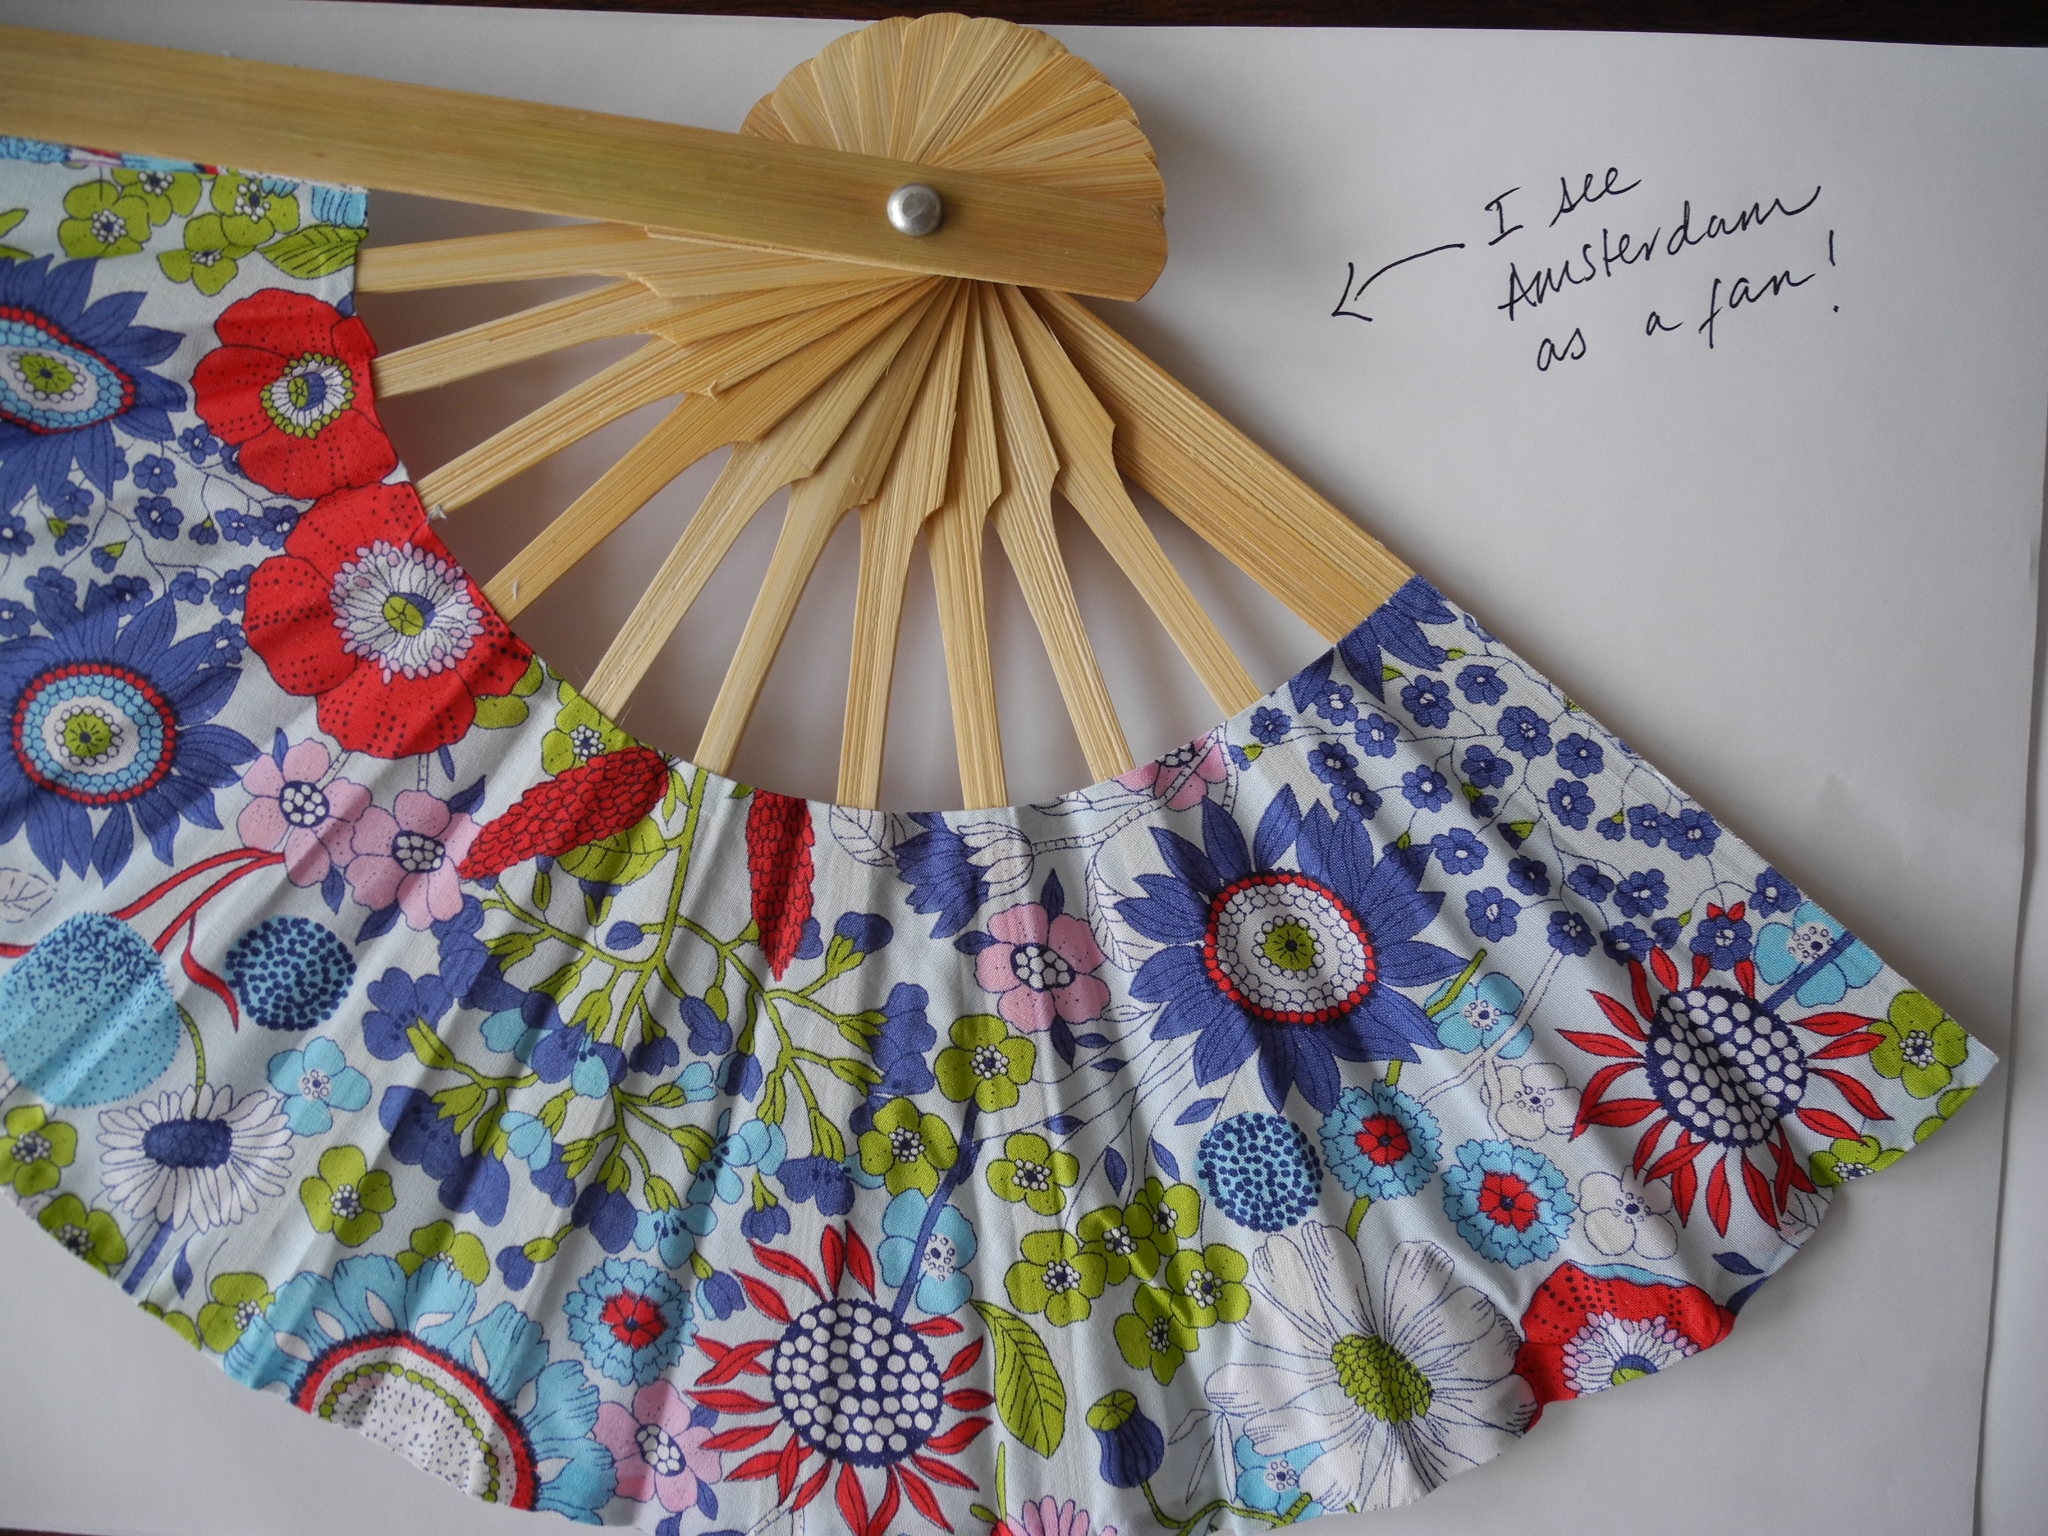 Craft Stores in Amsterdam - image 6 - student project